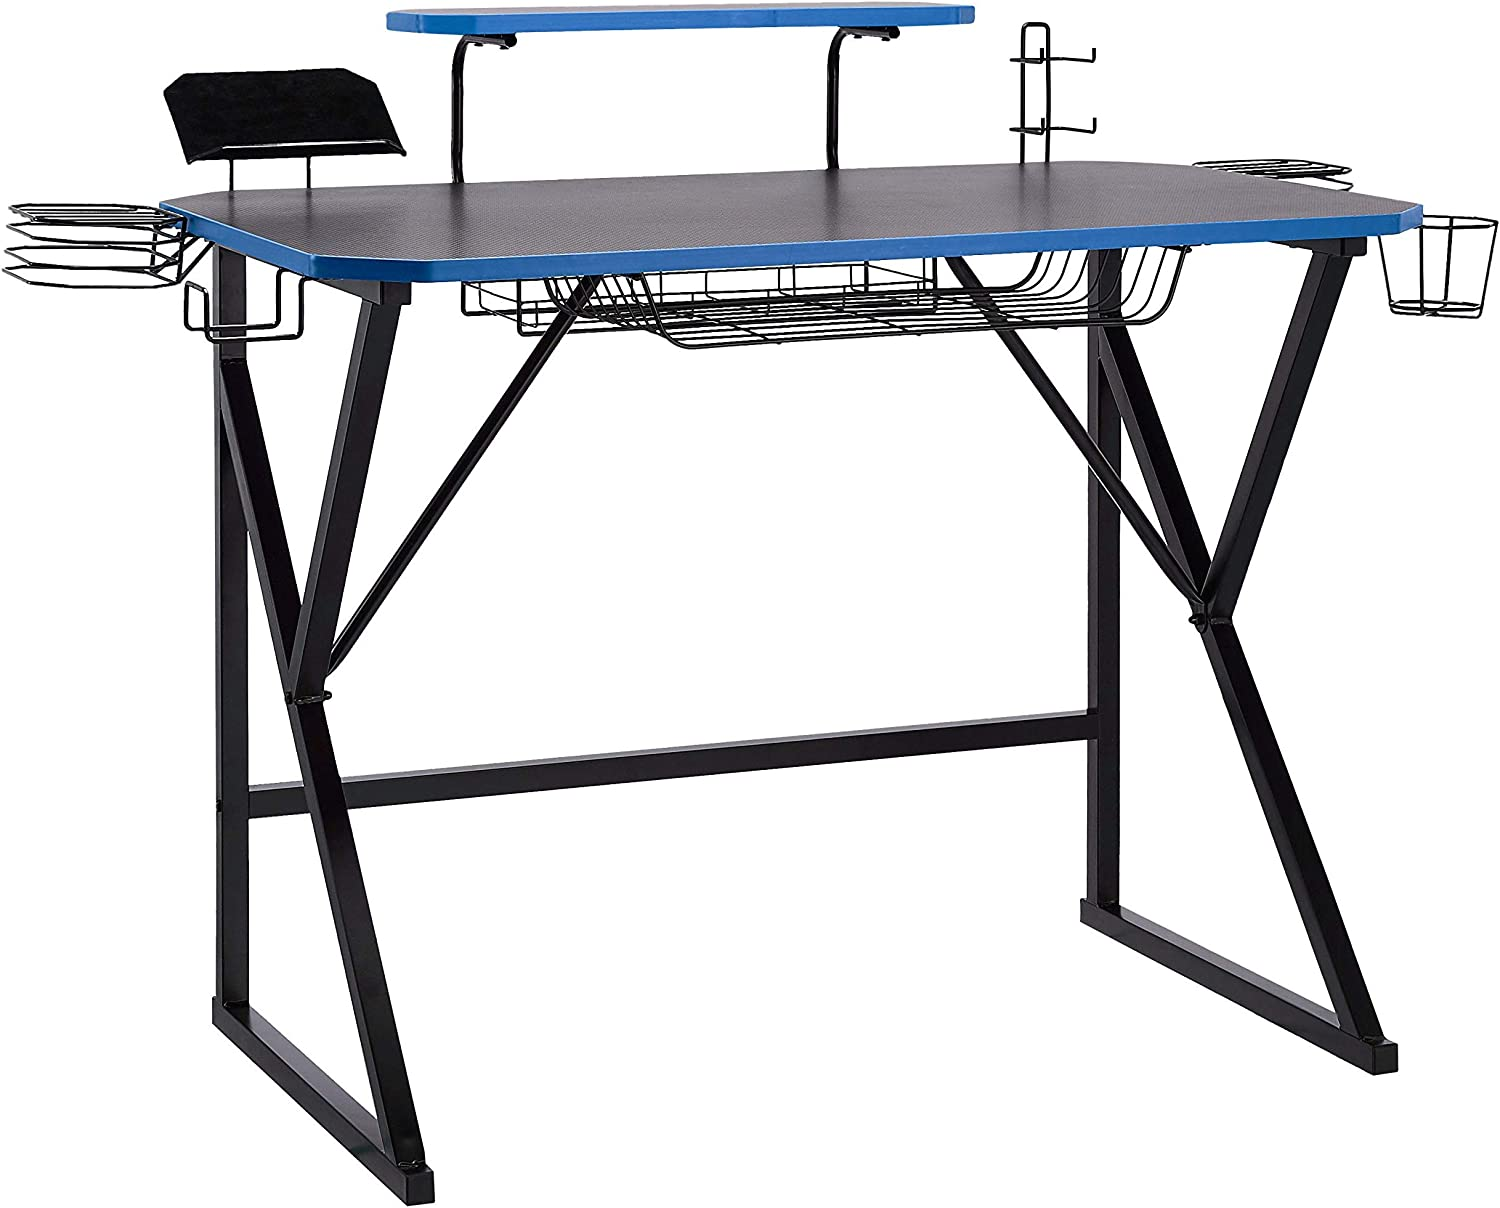 Amazon Basics Gaming Computer Desk NEW before selling with Max 52% OFF Storage for Controller